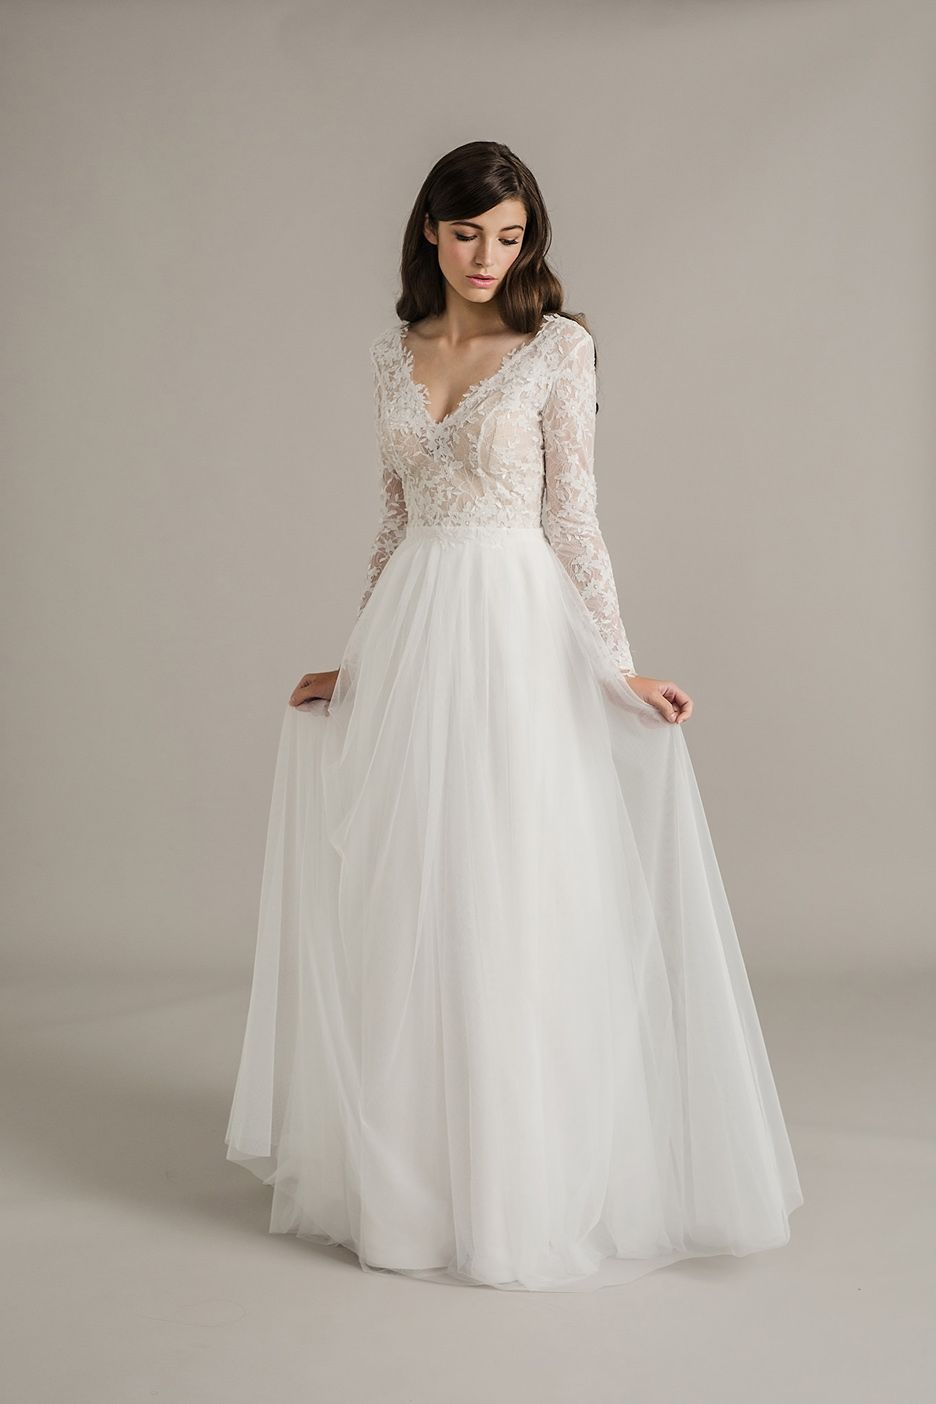 Genevieve wedding dress from sally eagle bridalus collection